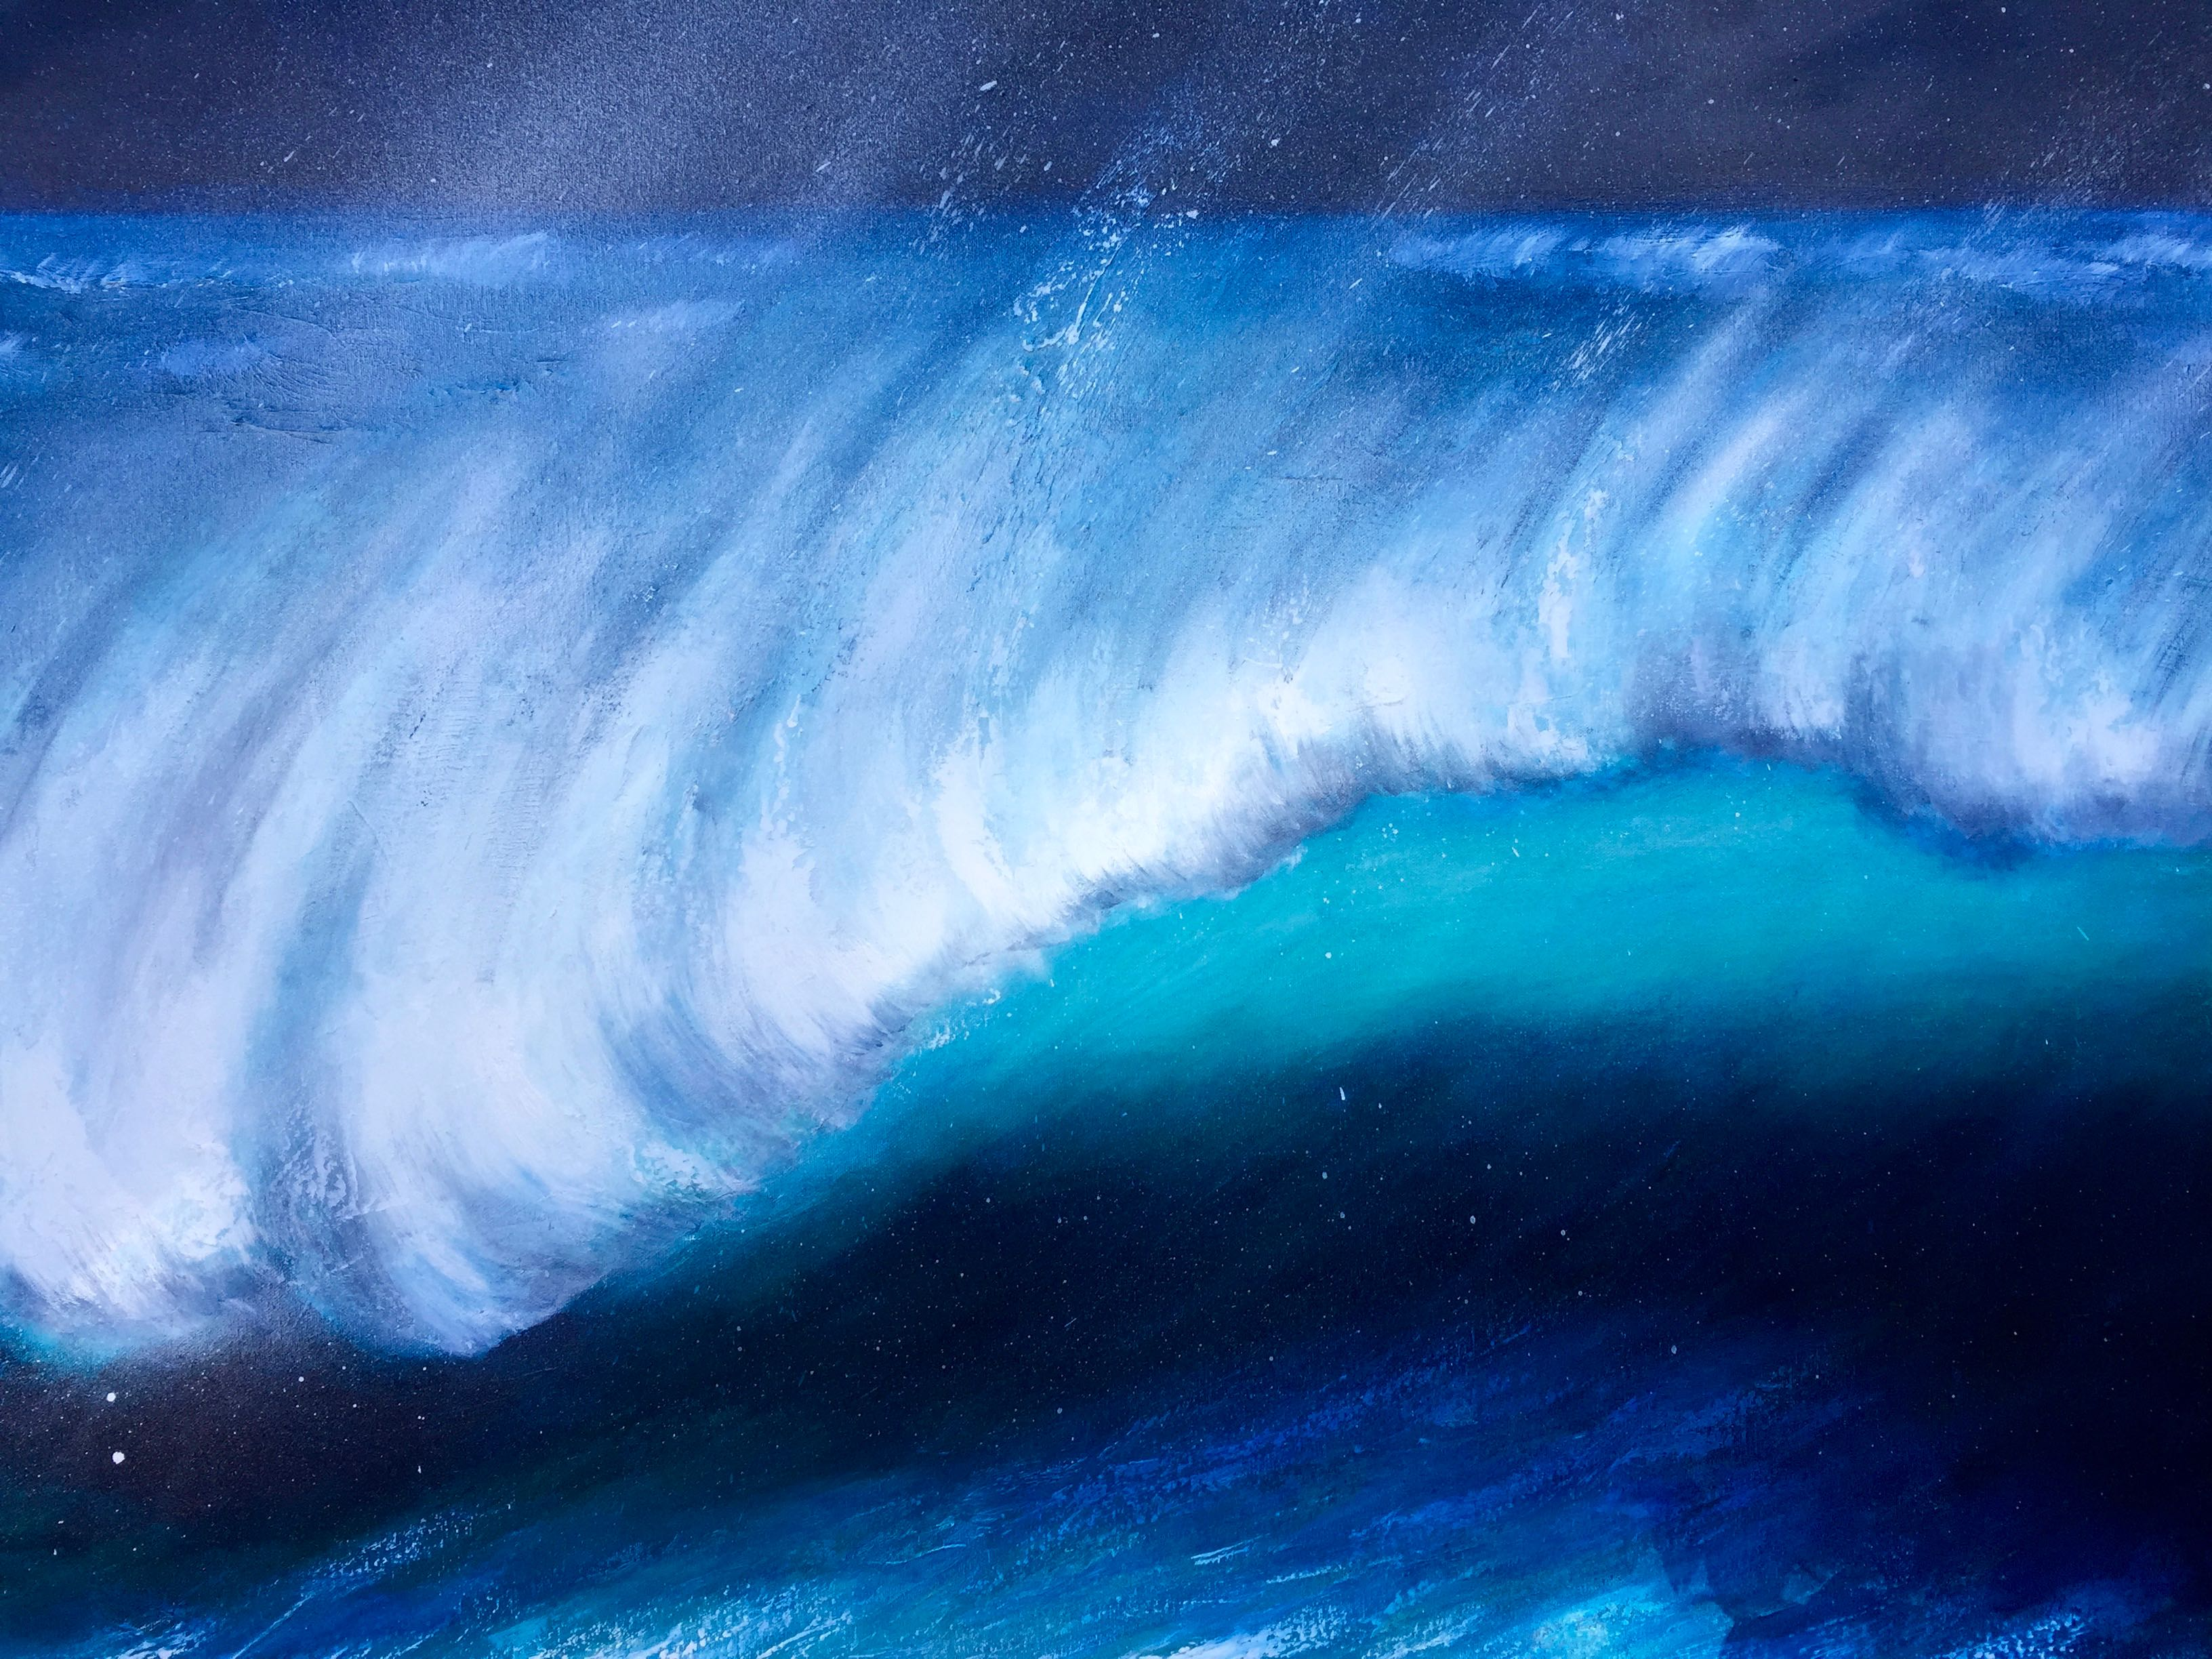 A large oil painting of a turquoise wave illuminated at night